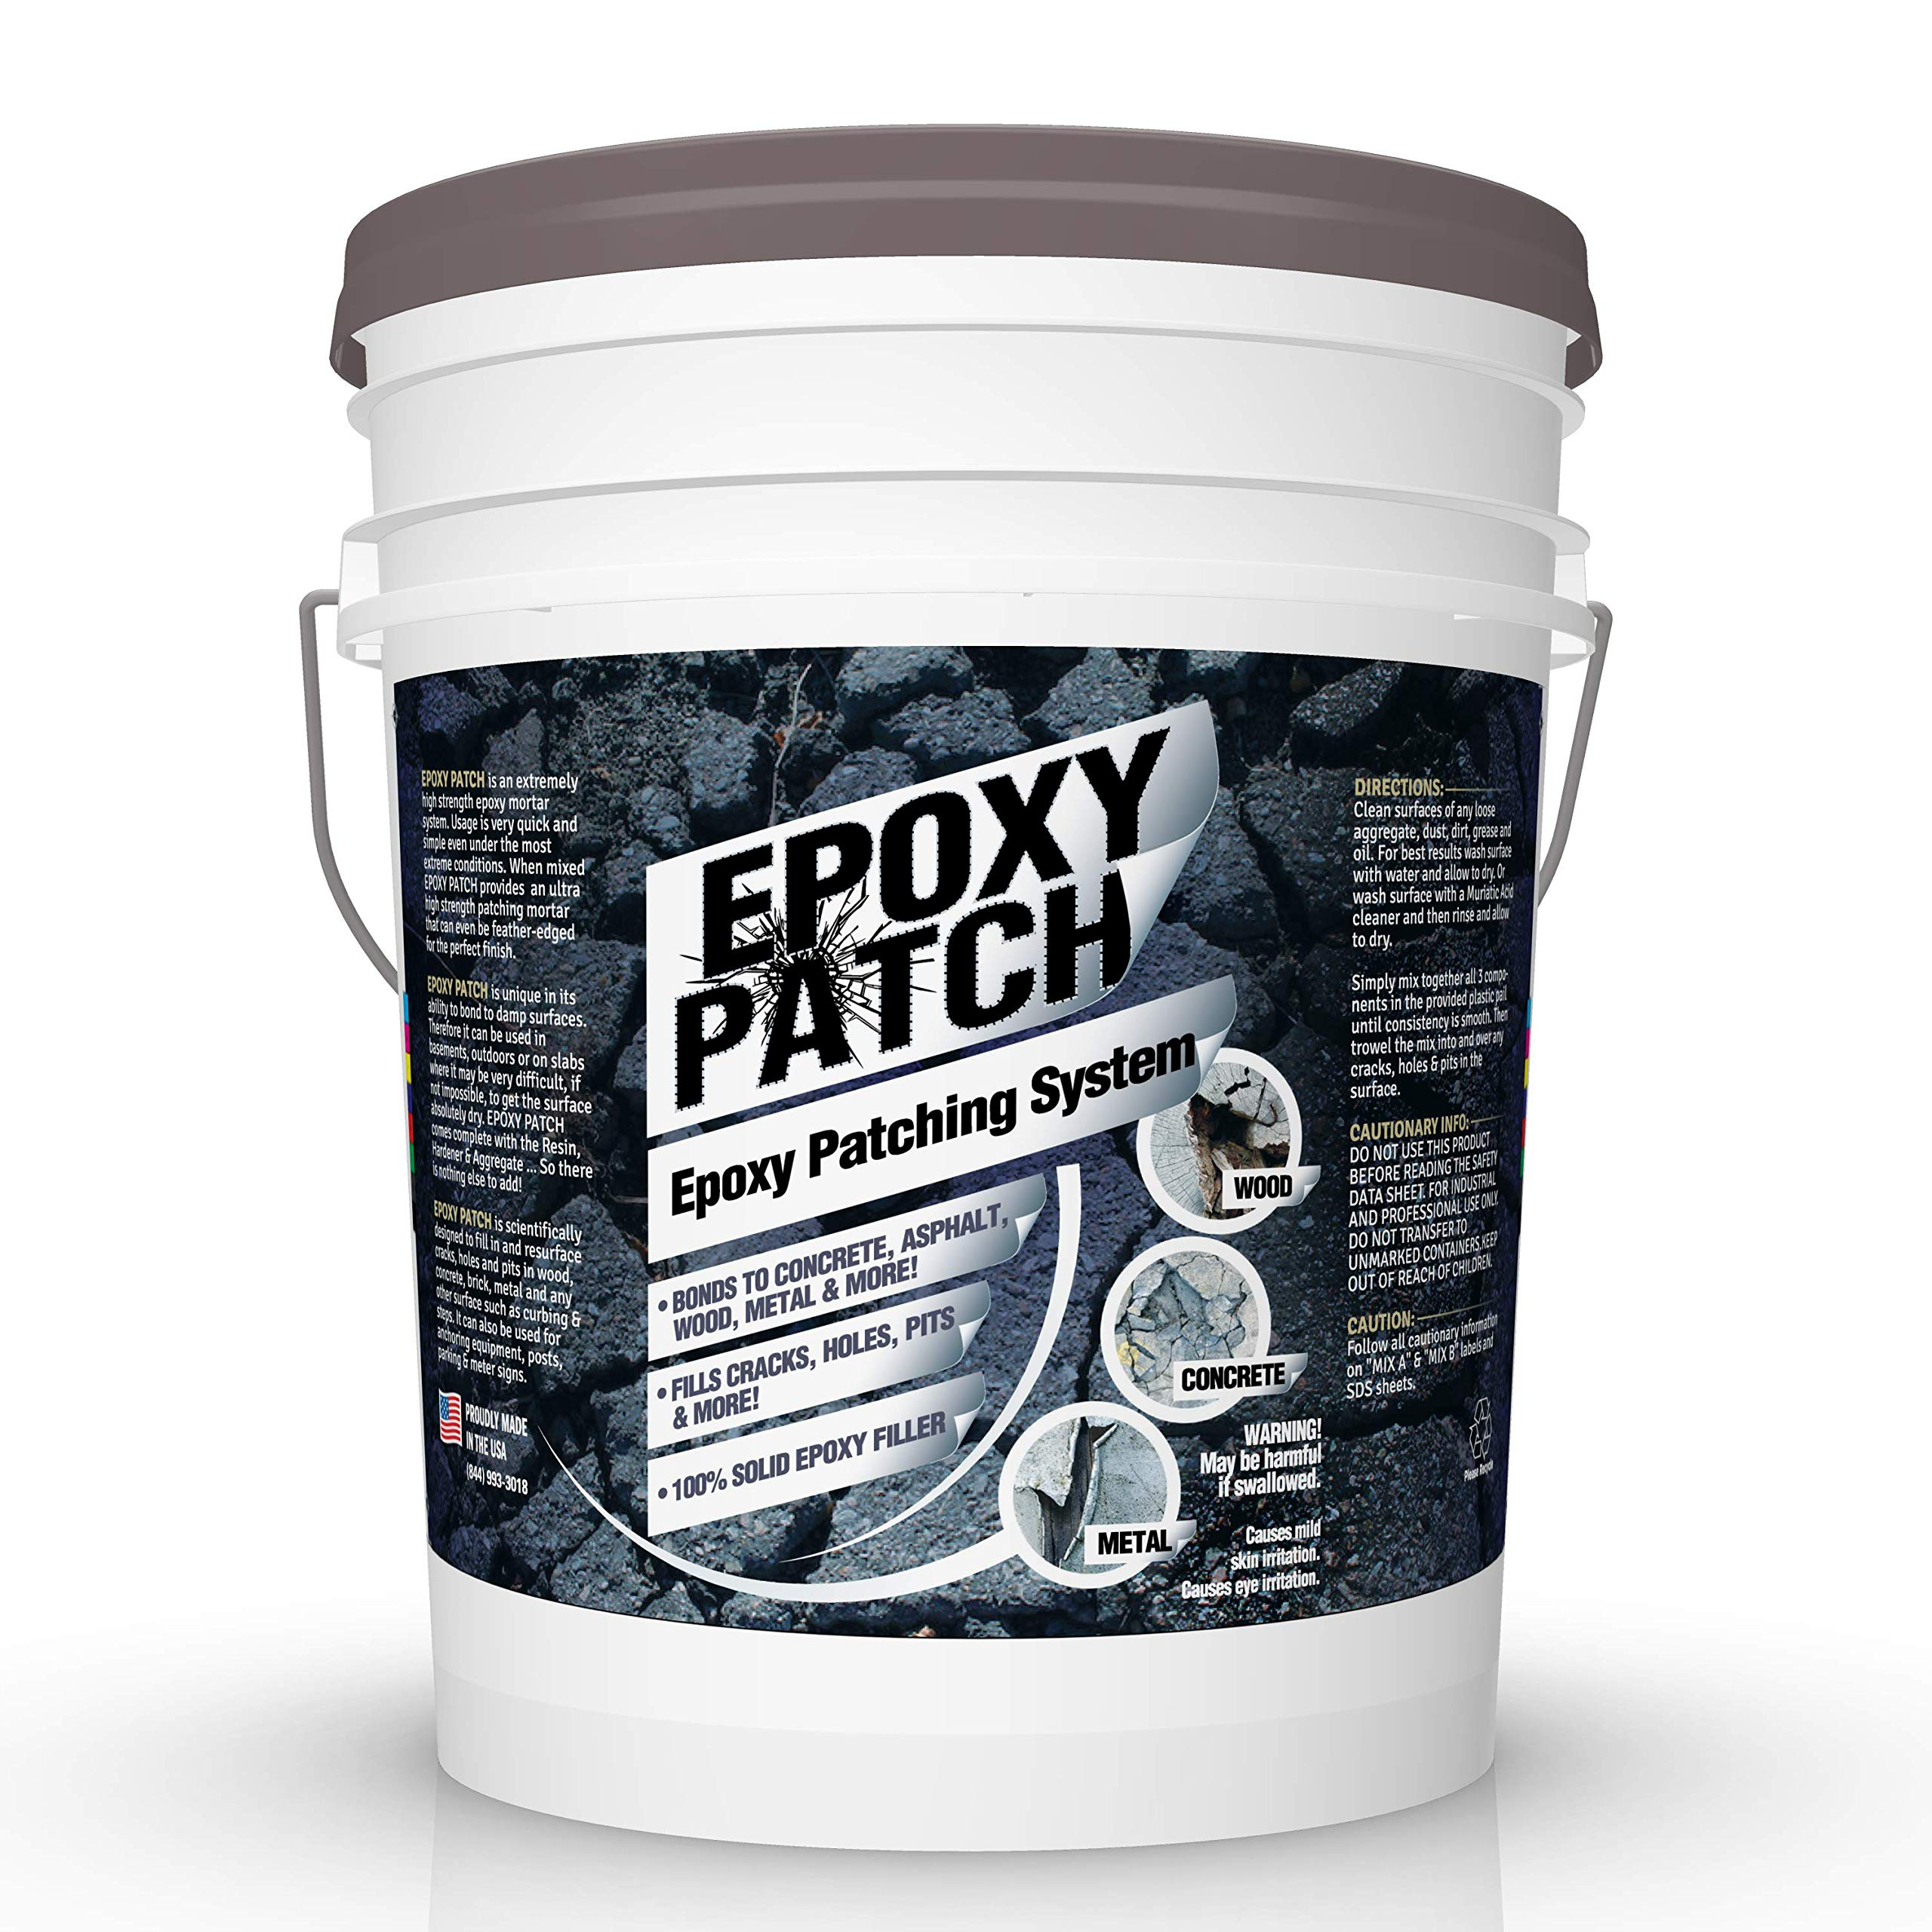 3 Part EPOXY Mortar Patching System - Contains Resin, Hardener & Aggregate. Fills Cracks, Holes, Pits & More! Bonds to Concrete, Asphalt, Wood & Metal. (50 lb Pail) by FDC